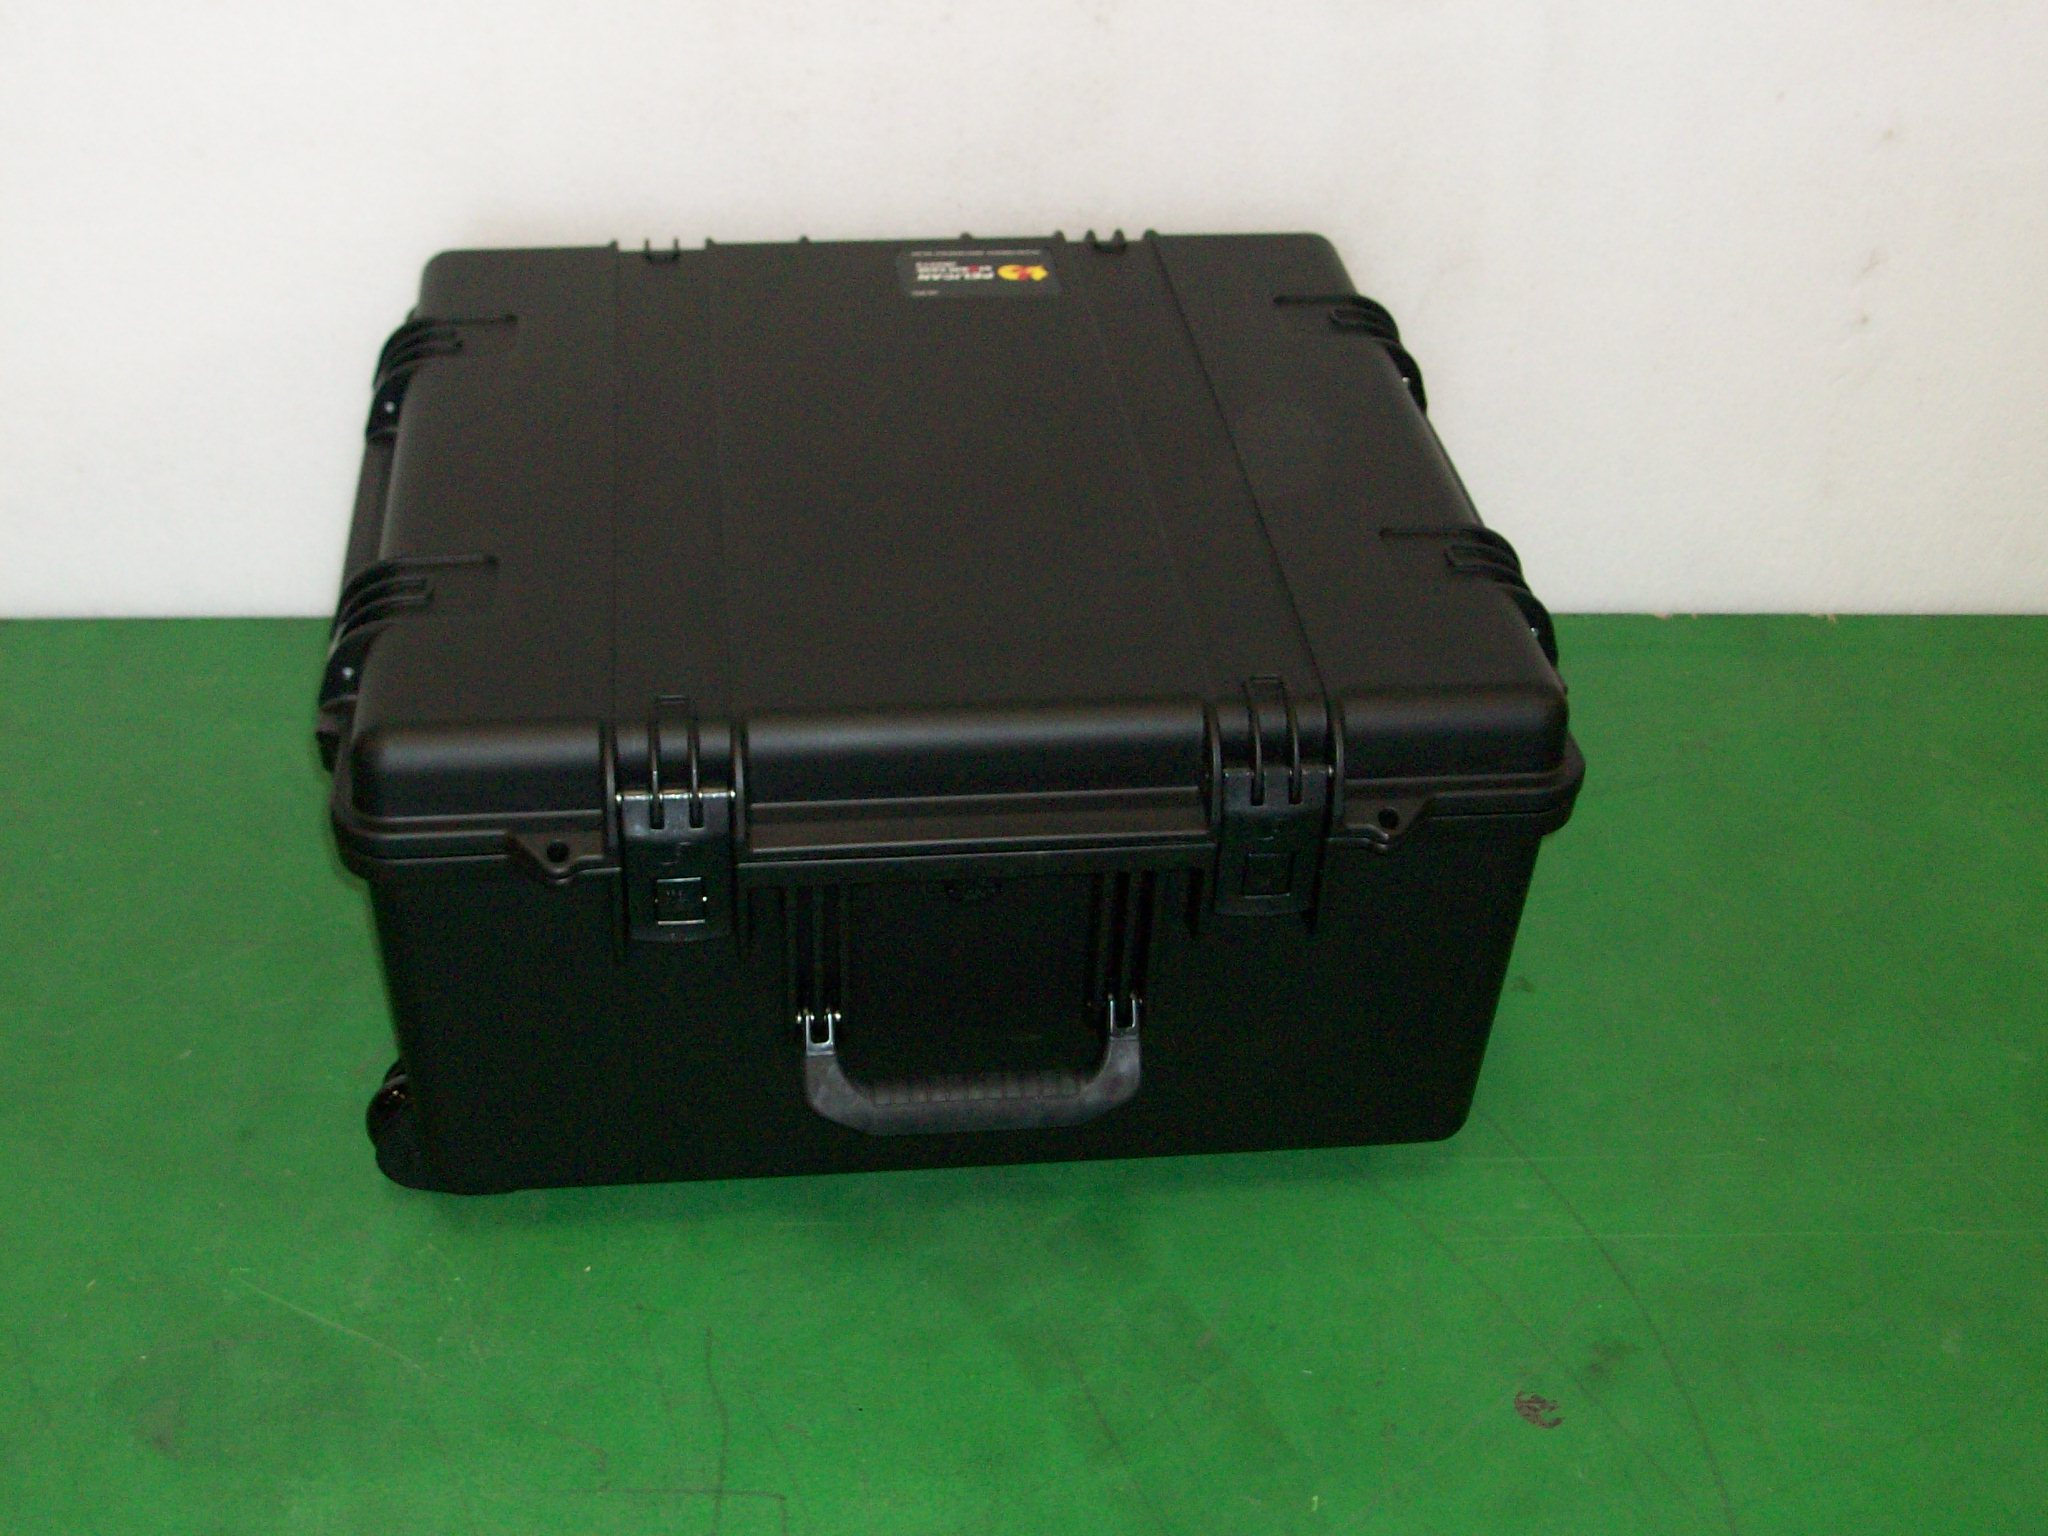 Print # 6438 - Pelican Storm iM2875 Case for Analog Way Pulse 2 PLS350 Kit By Nelson Case Corp